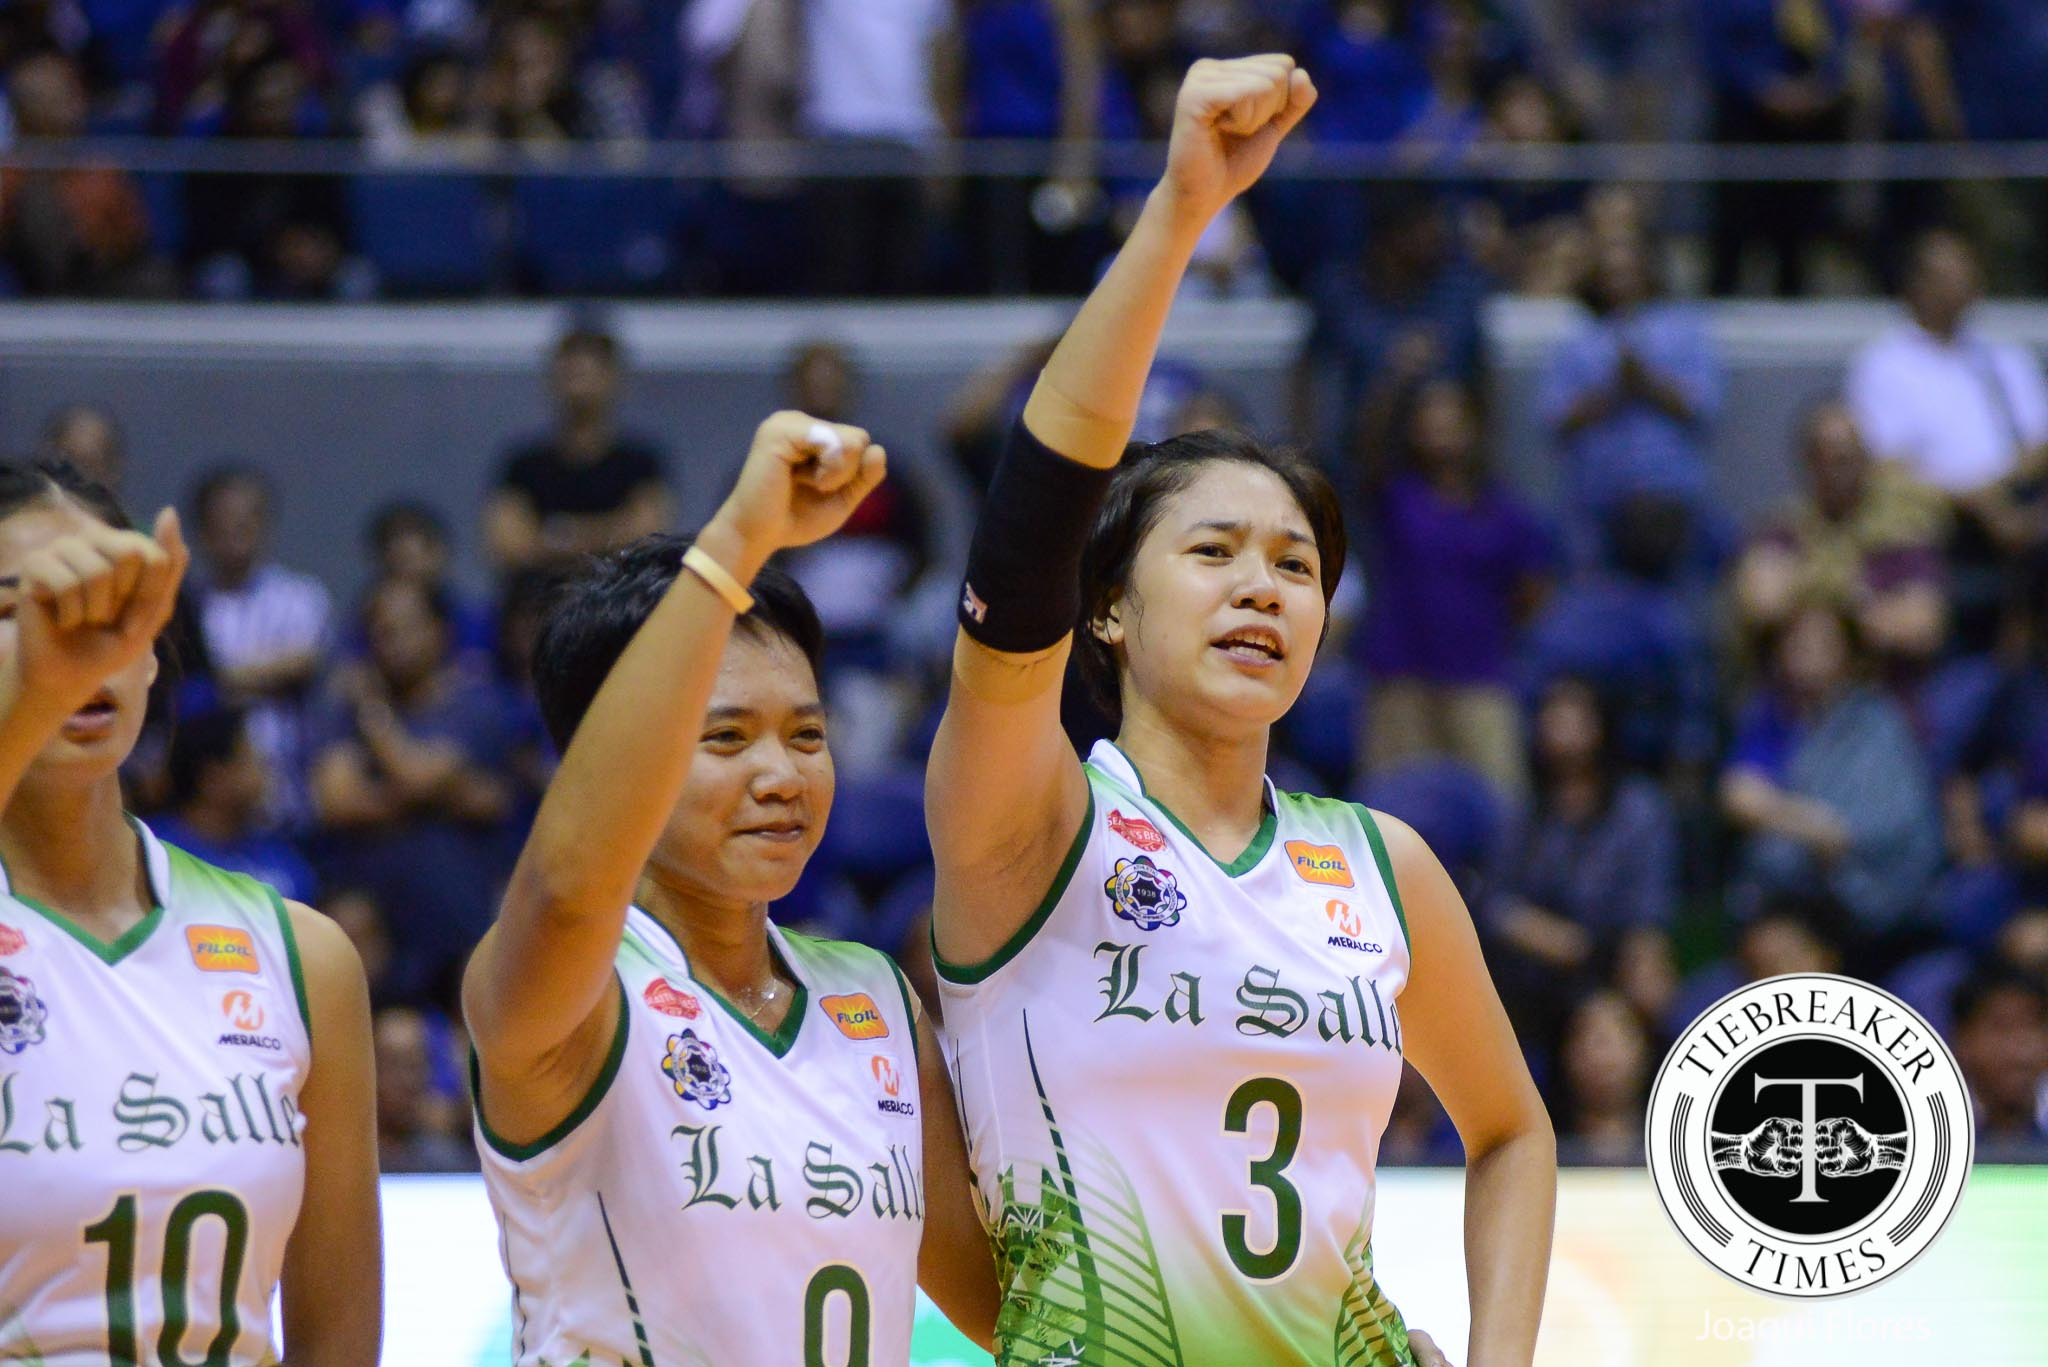 Tiebreaker Times Maraño thrilled with Fajardo, Reyes' growth DLSU News UAAP Volleyball  UAAP Season 78 Women's Volleyball UAAP Season 78 Mika Reyes Kim Fajardo DLSU Women's Volleyball Aby Marano